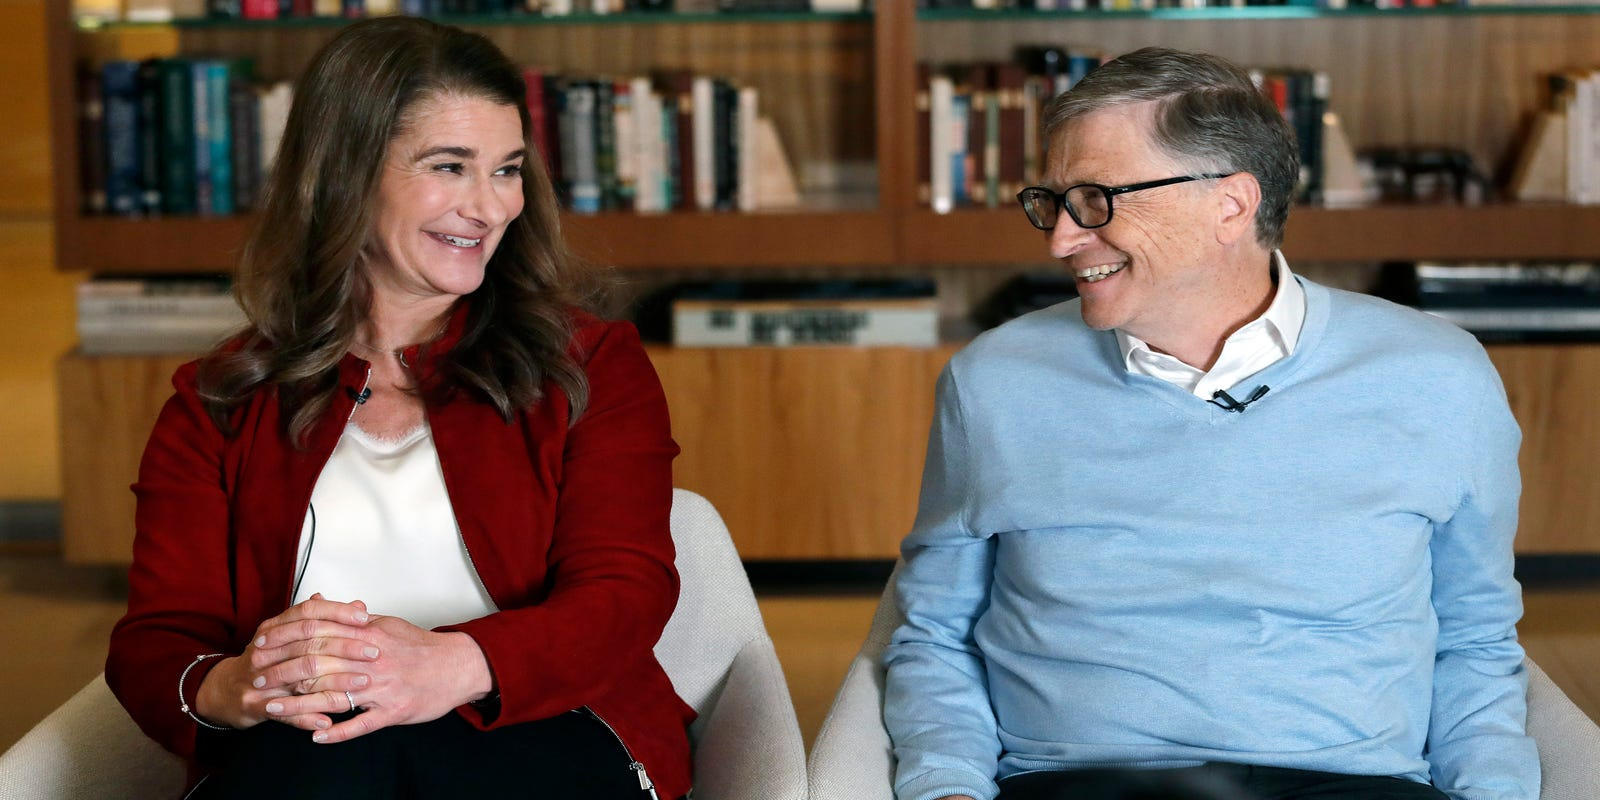 Bill and Melinda Gates are divorcing: What they've said about their marriage - USA TODAY